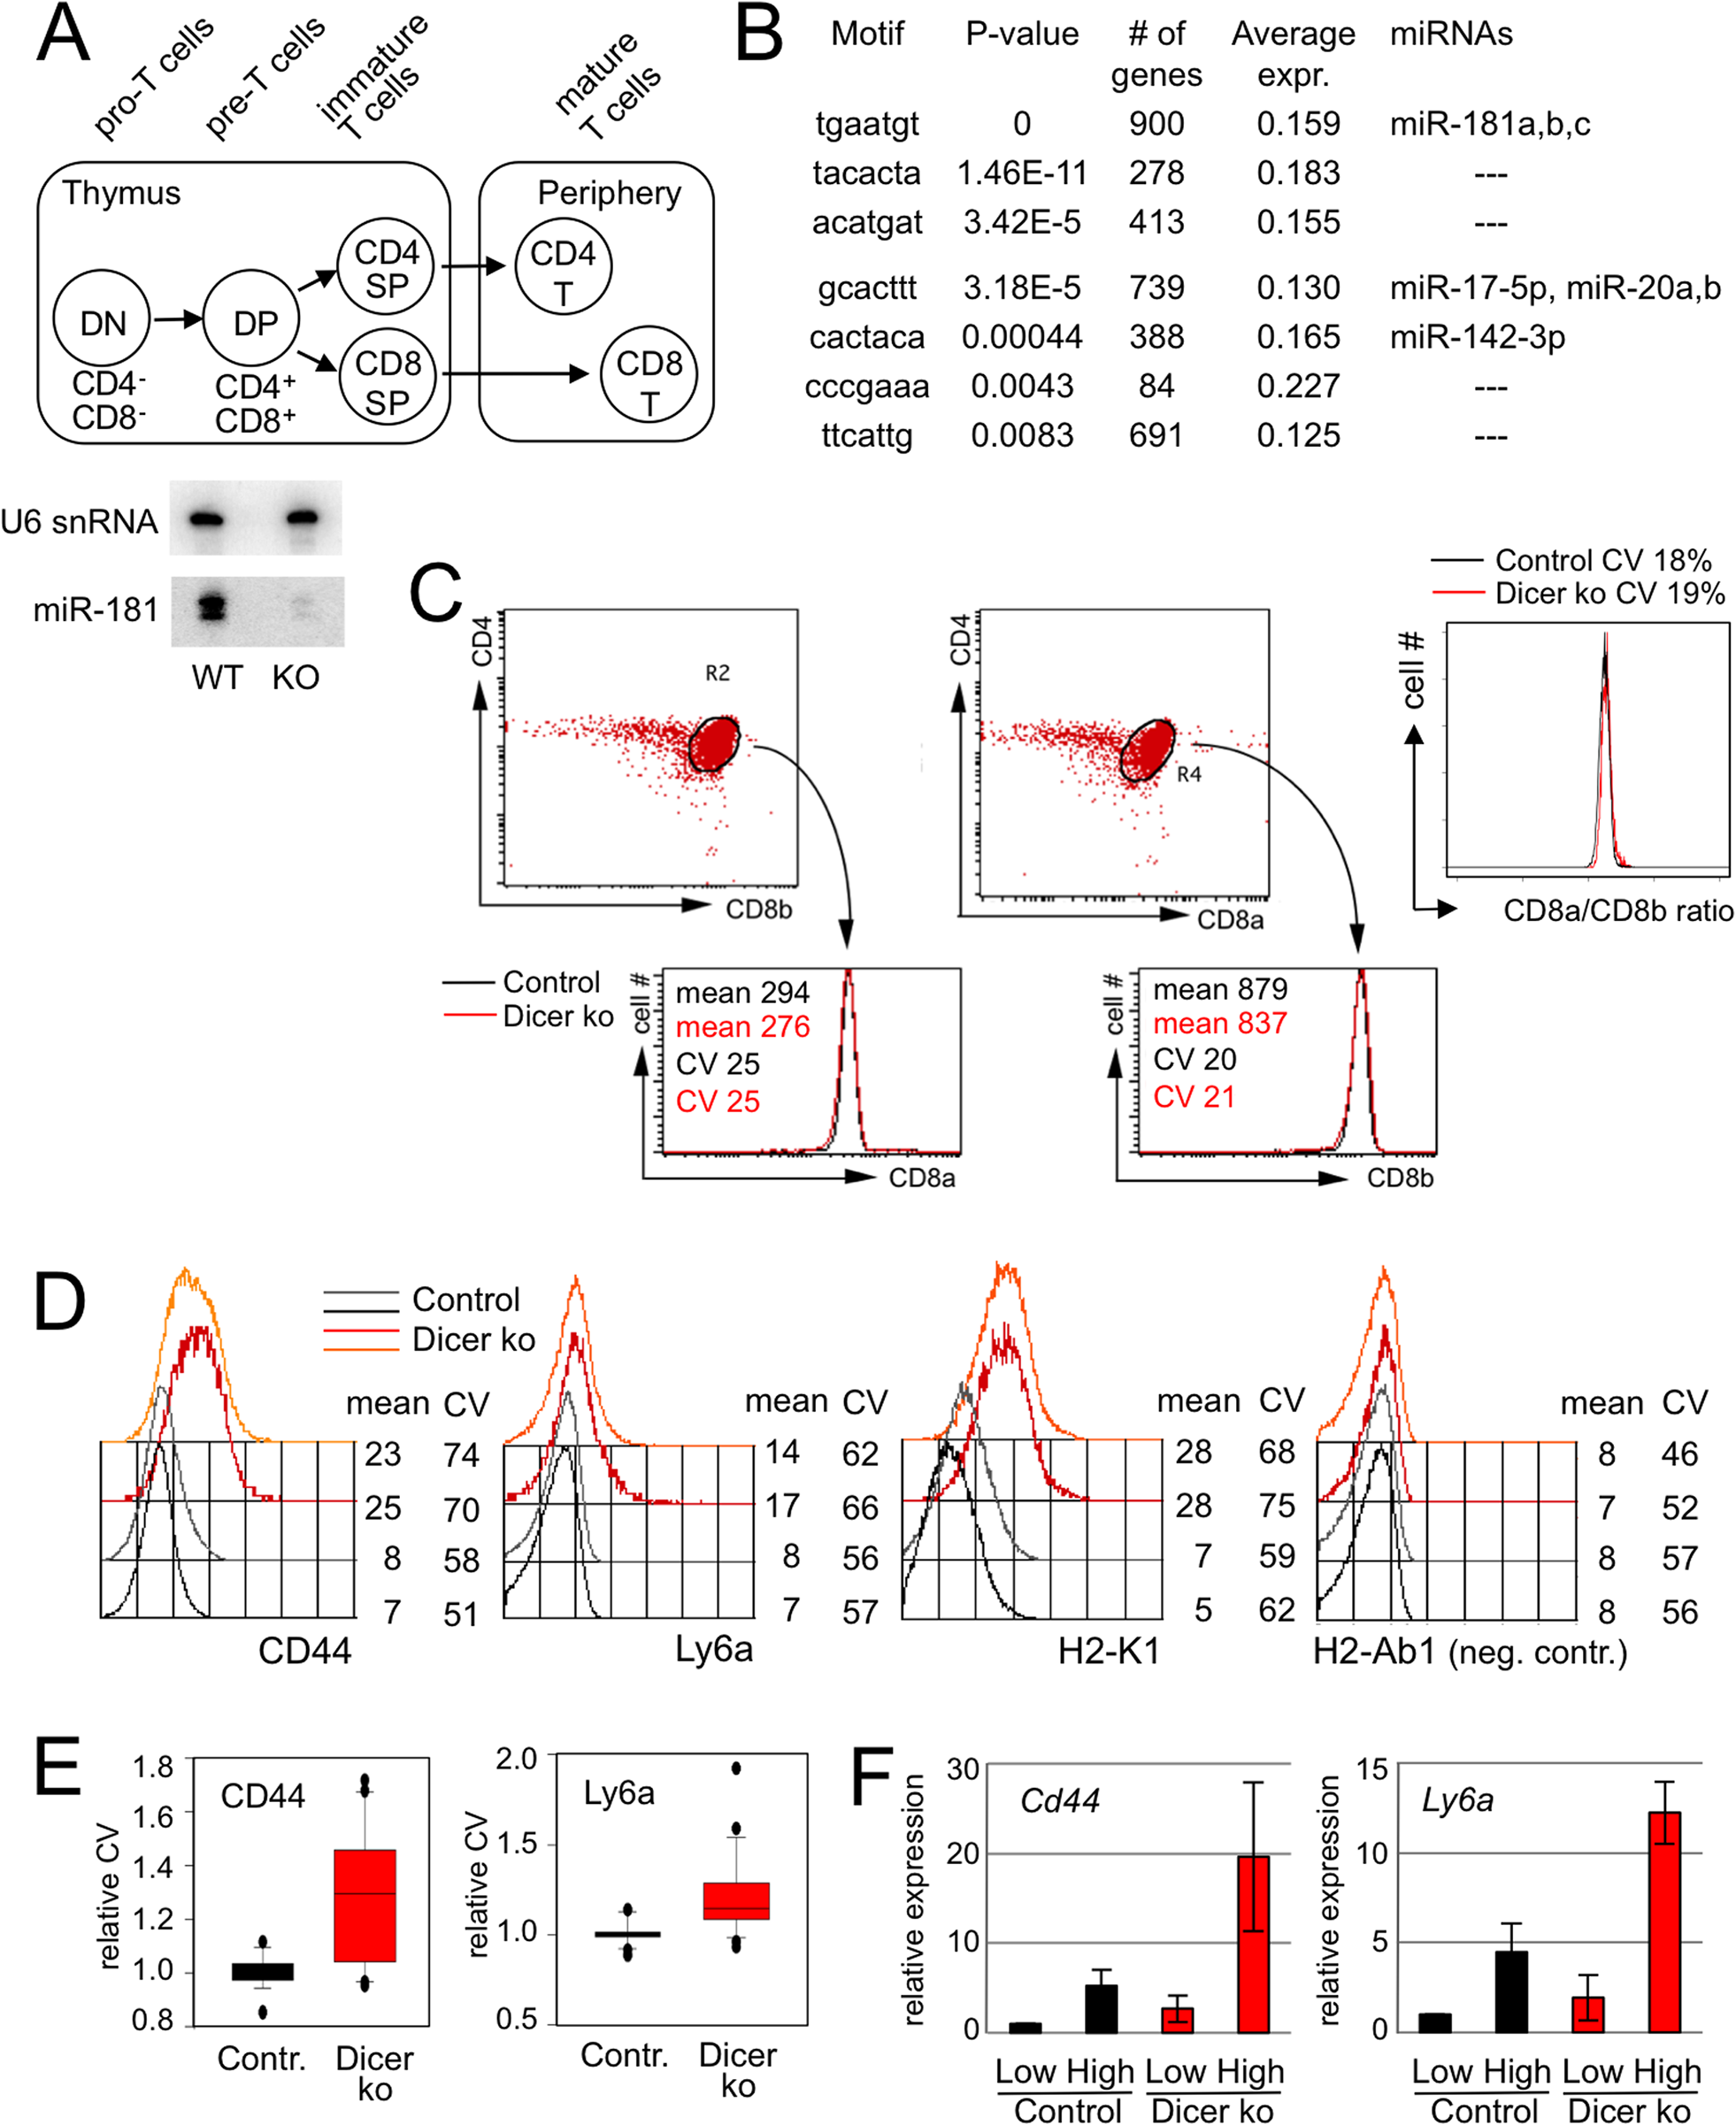 microRNA-dependent regulation of gene expression in developing thymocytes.